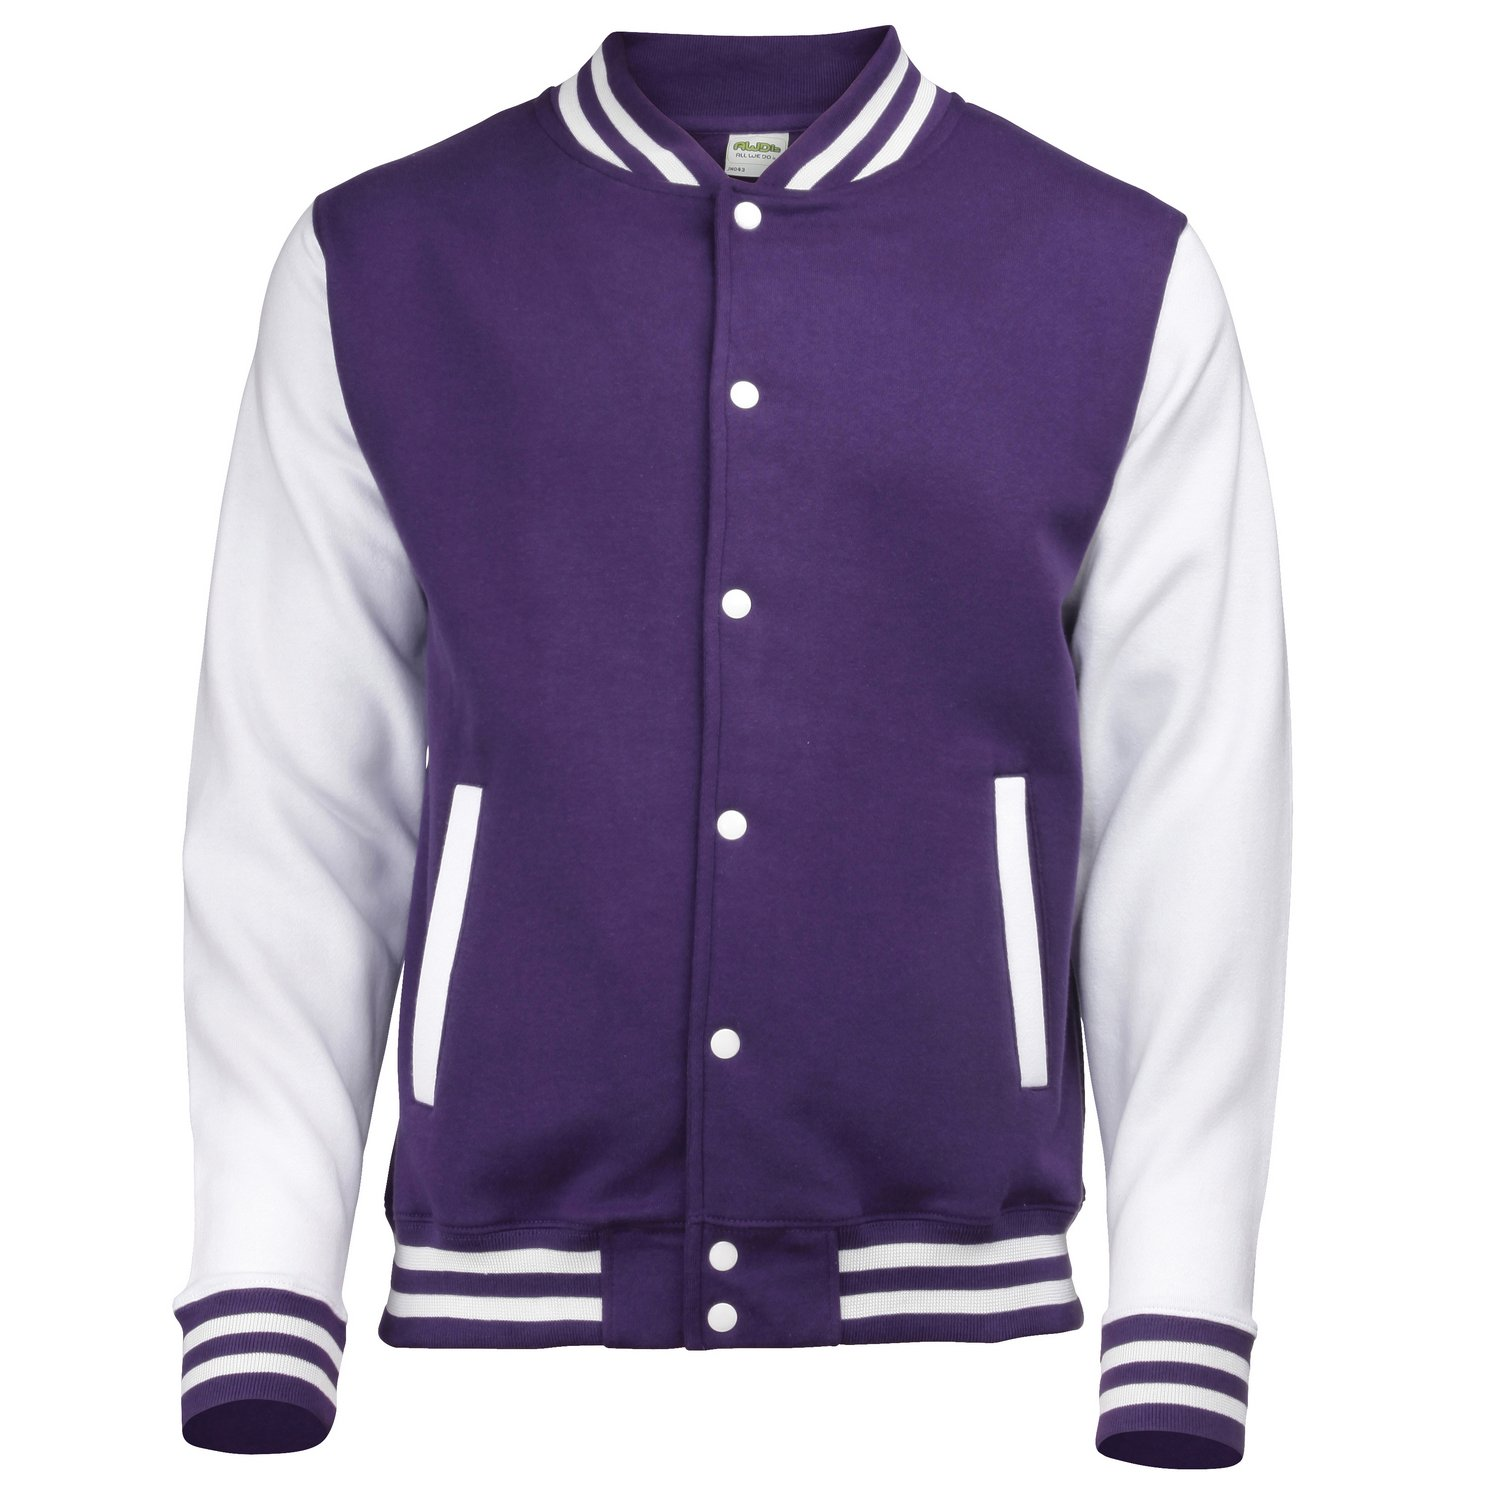 AWDis Hoods Varsity Letterman jacket Purple / White M by AWDis Hoods